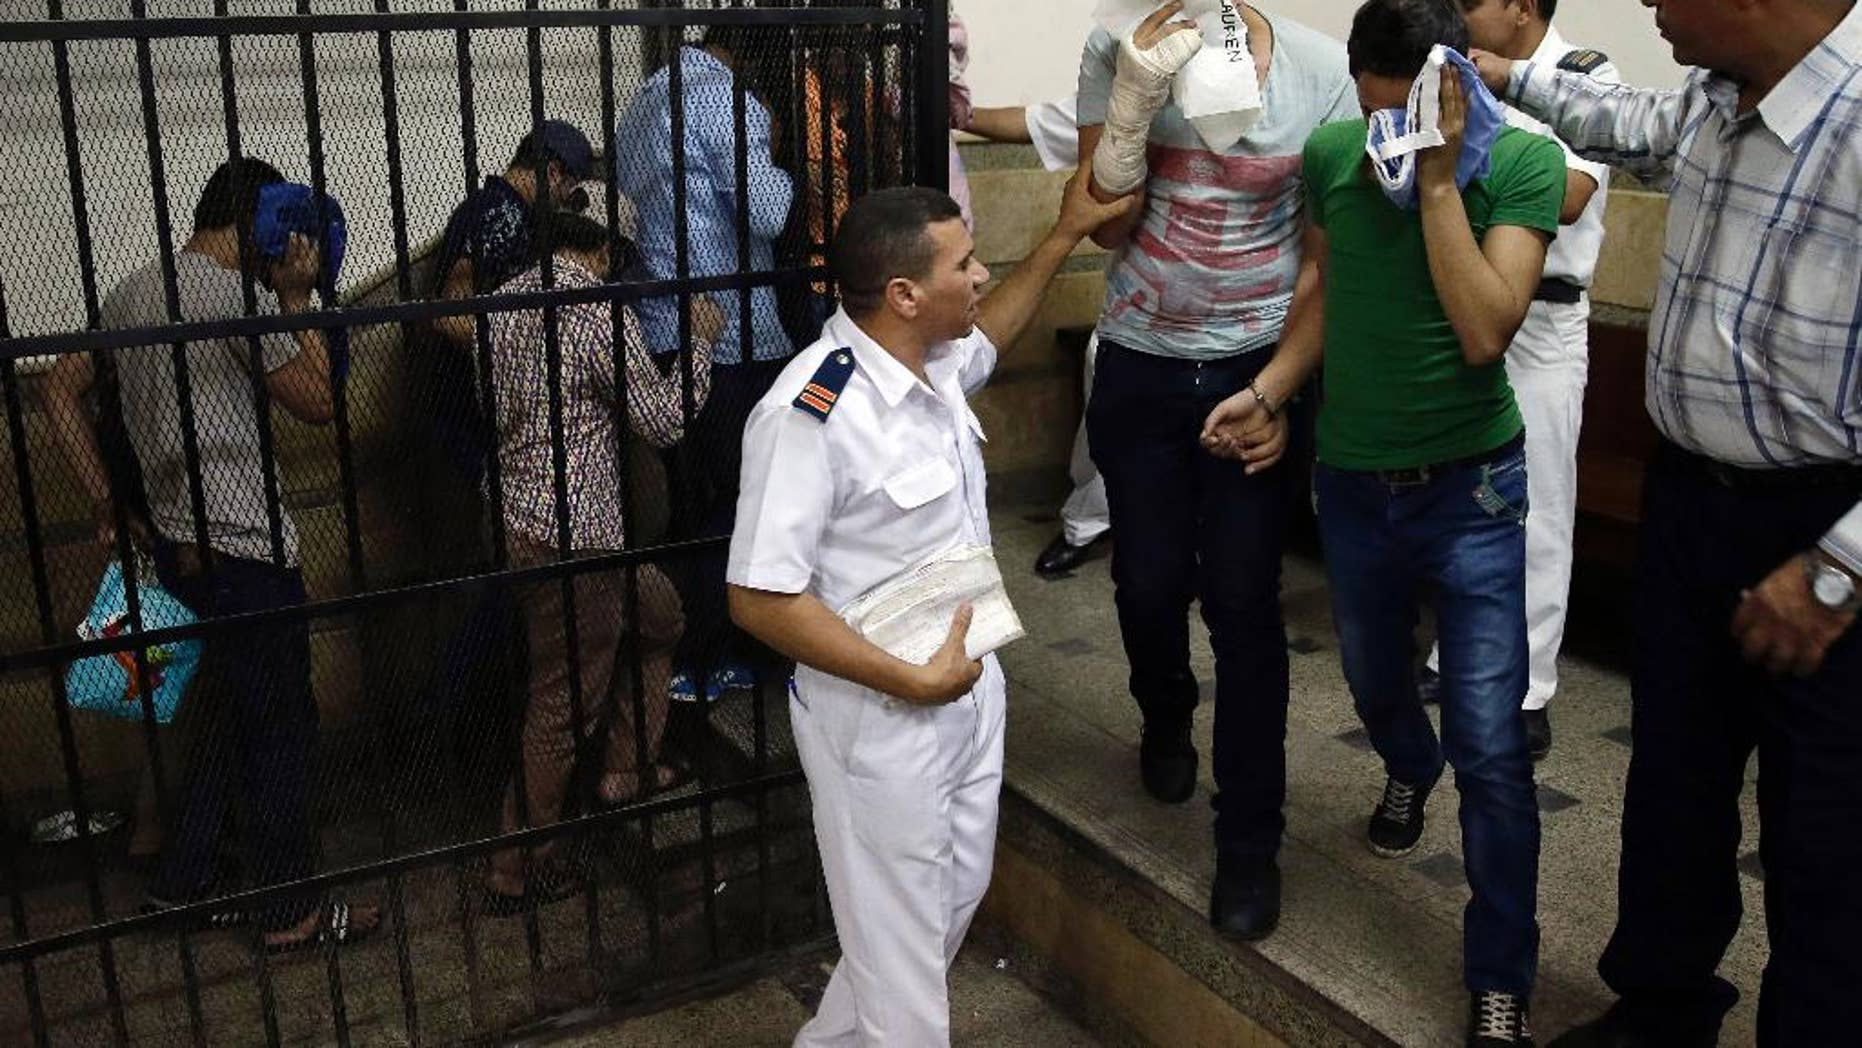 """FILE - In this Saturday, Nov. 1, 2014 file photo, Eight Egyptian men convicted for """"inciting debauchery"""" following their appearance in a video of an alleged same-sex wedding party on a Nile boat leave the defendant's cage in a courtroom in Cairo, Egypt. An Egyptian official says security forces raided a bath house and arrested 25 men for homosexuality, dragging them naked out of the building in downtown Cairo. (AP Photo/Hassan Ammar, File)"""